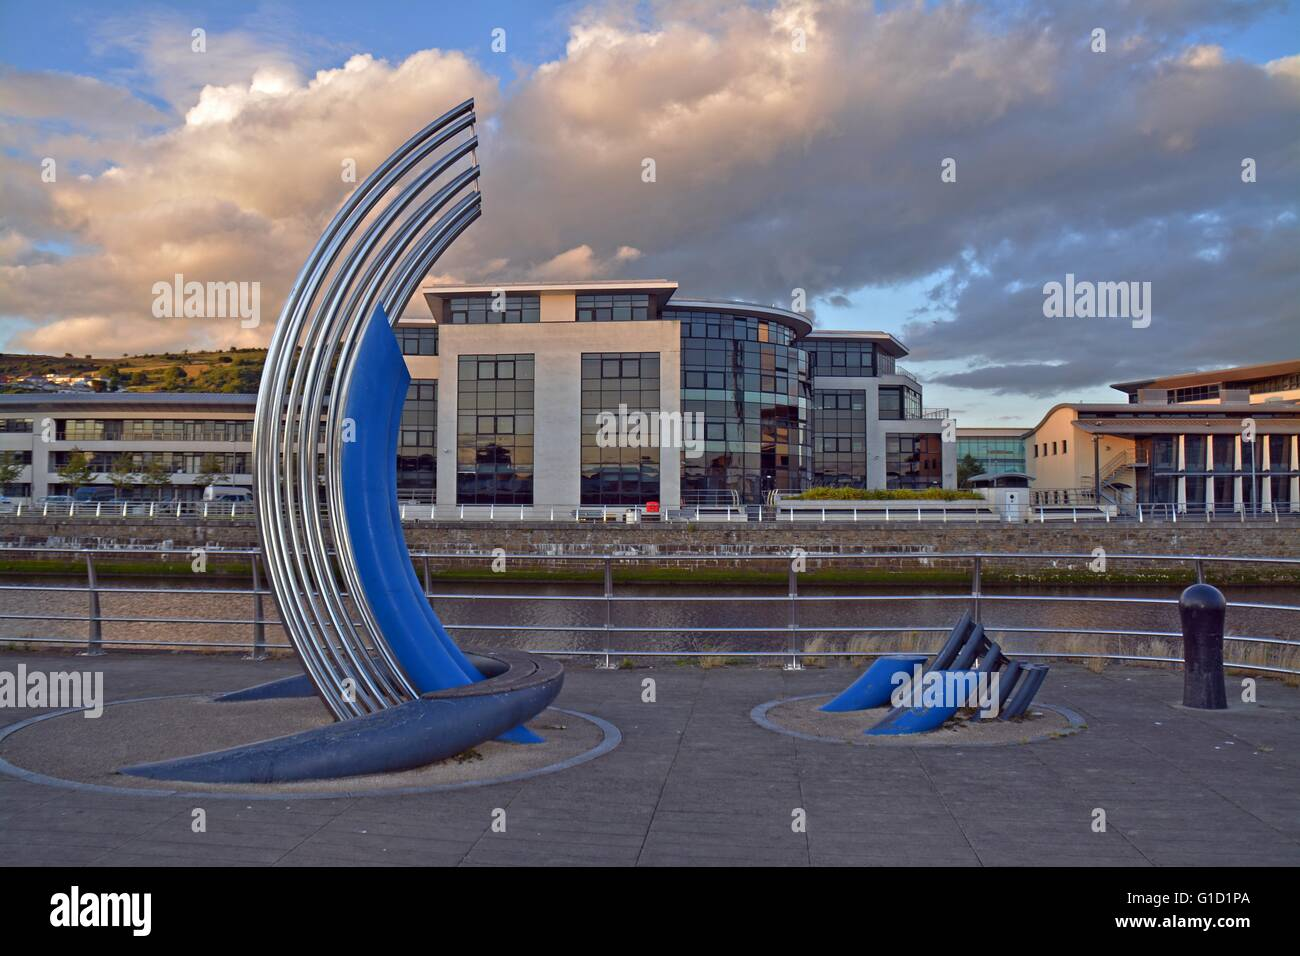 Public Artwork in Swansea, SA1 development is just behind, over the river Twe. - Stock Image